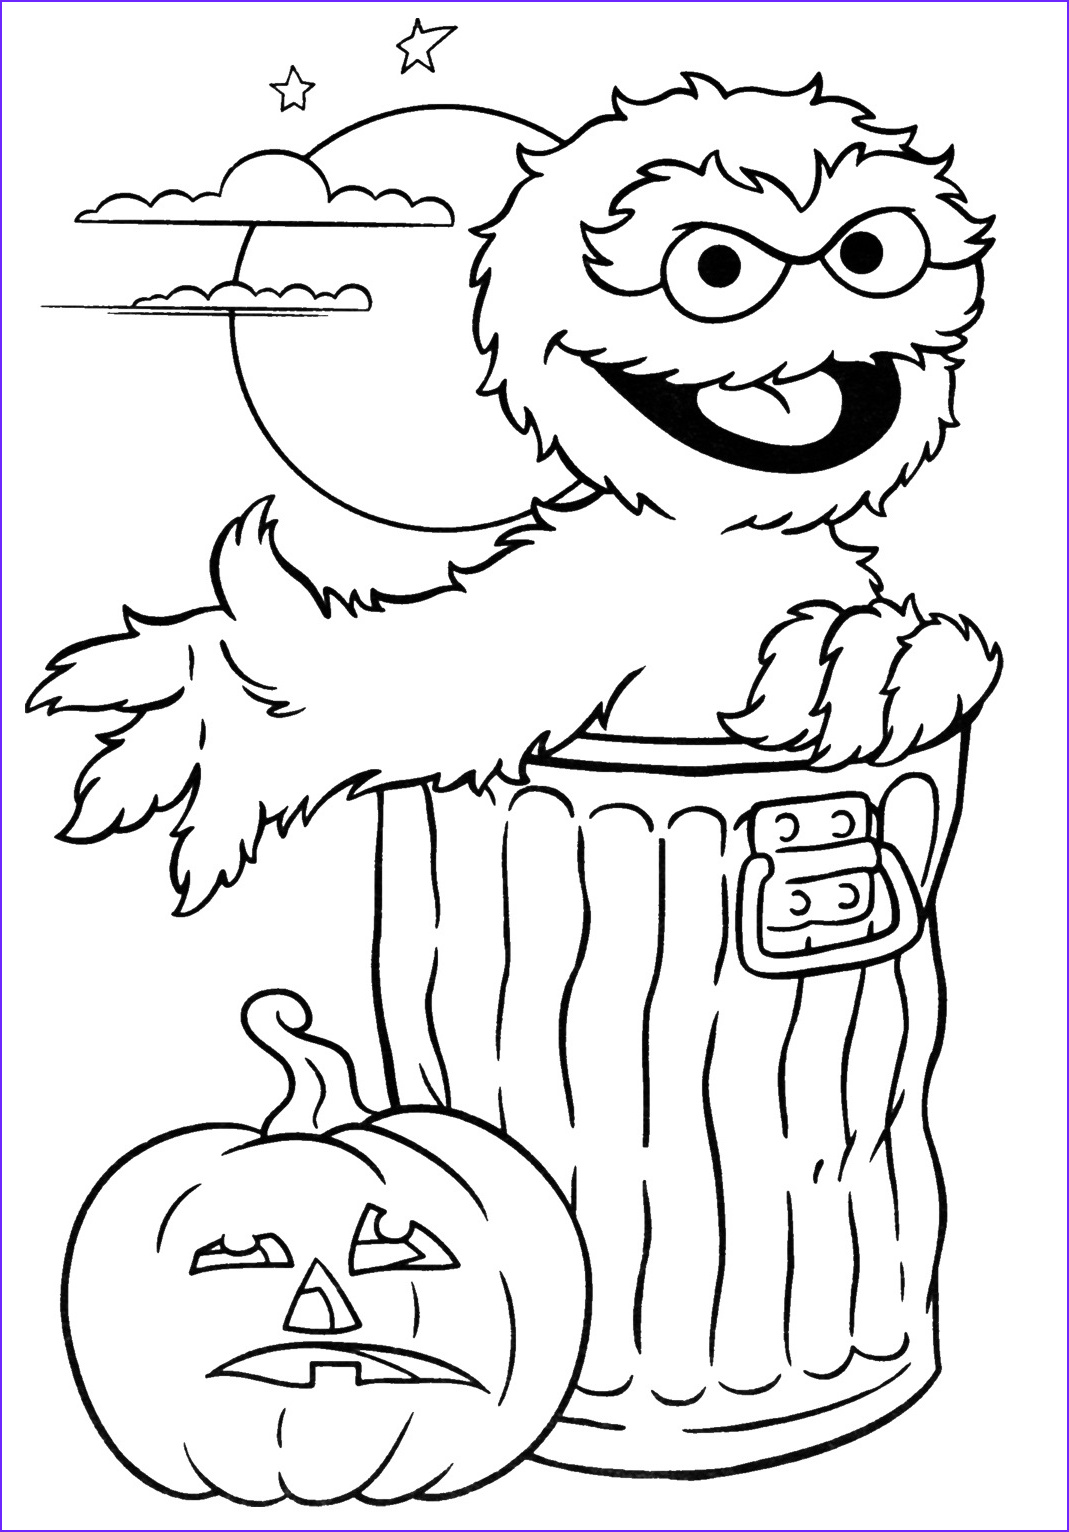 Halloween Coloring Page Free New Images Halloween Archives